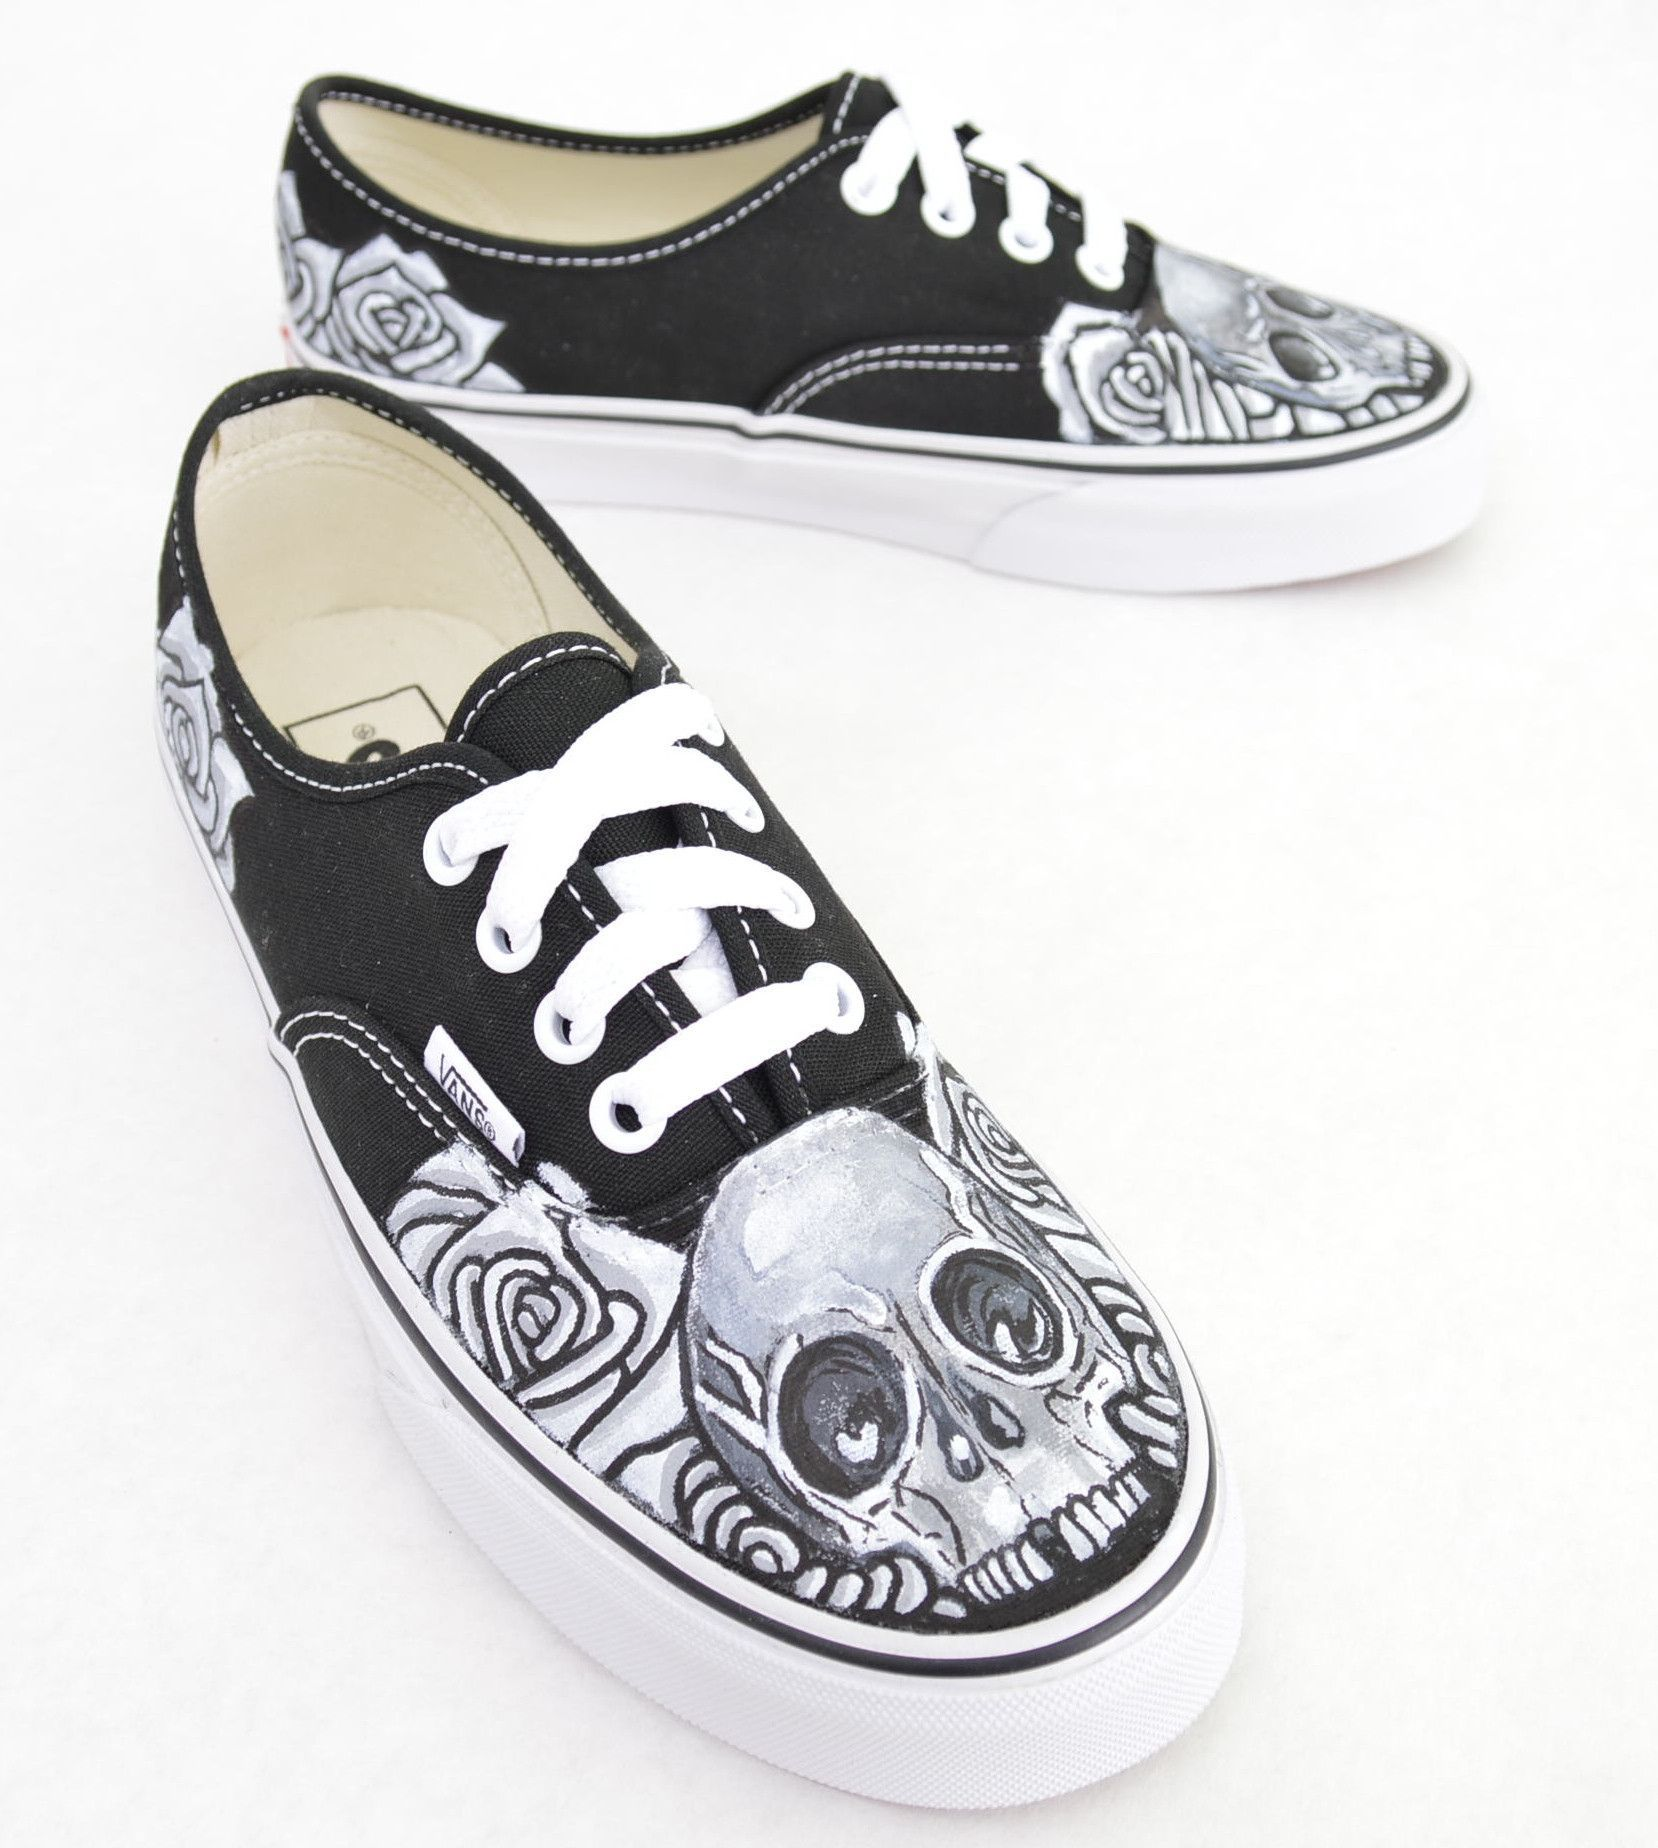 best cheap 0770b b73e3 These custom hand-painted, one-of-a-kind Black Vans Authentic Lace Up  Sneakers feature a black and white skull and rose theme. This image is  made-to-order ...